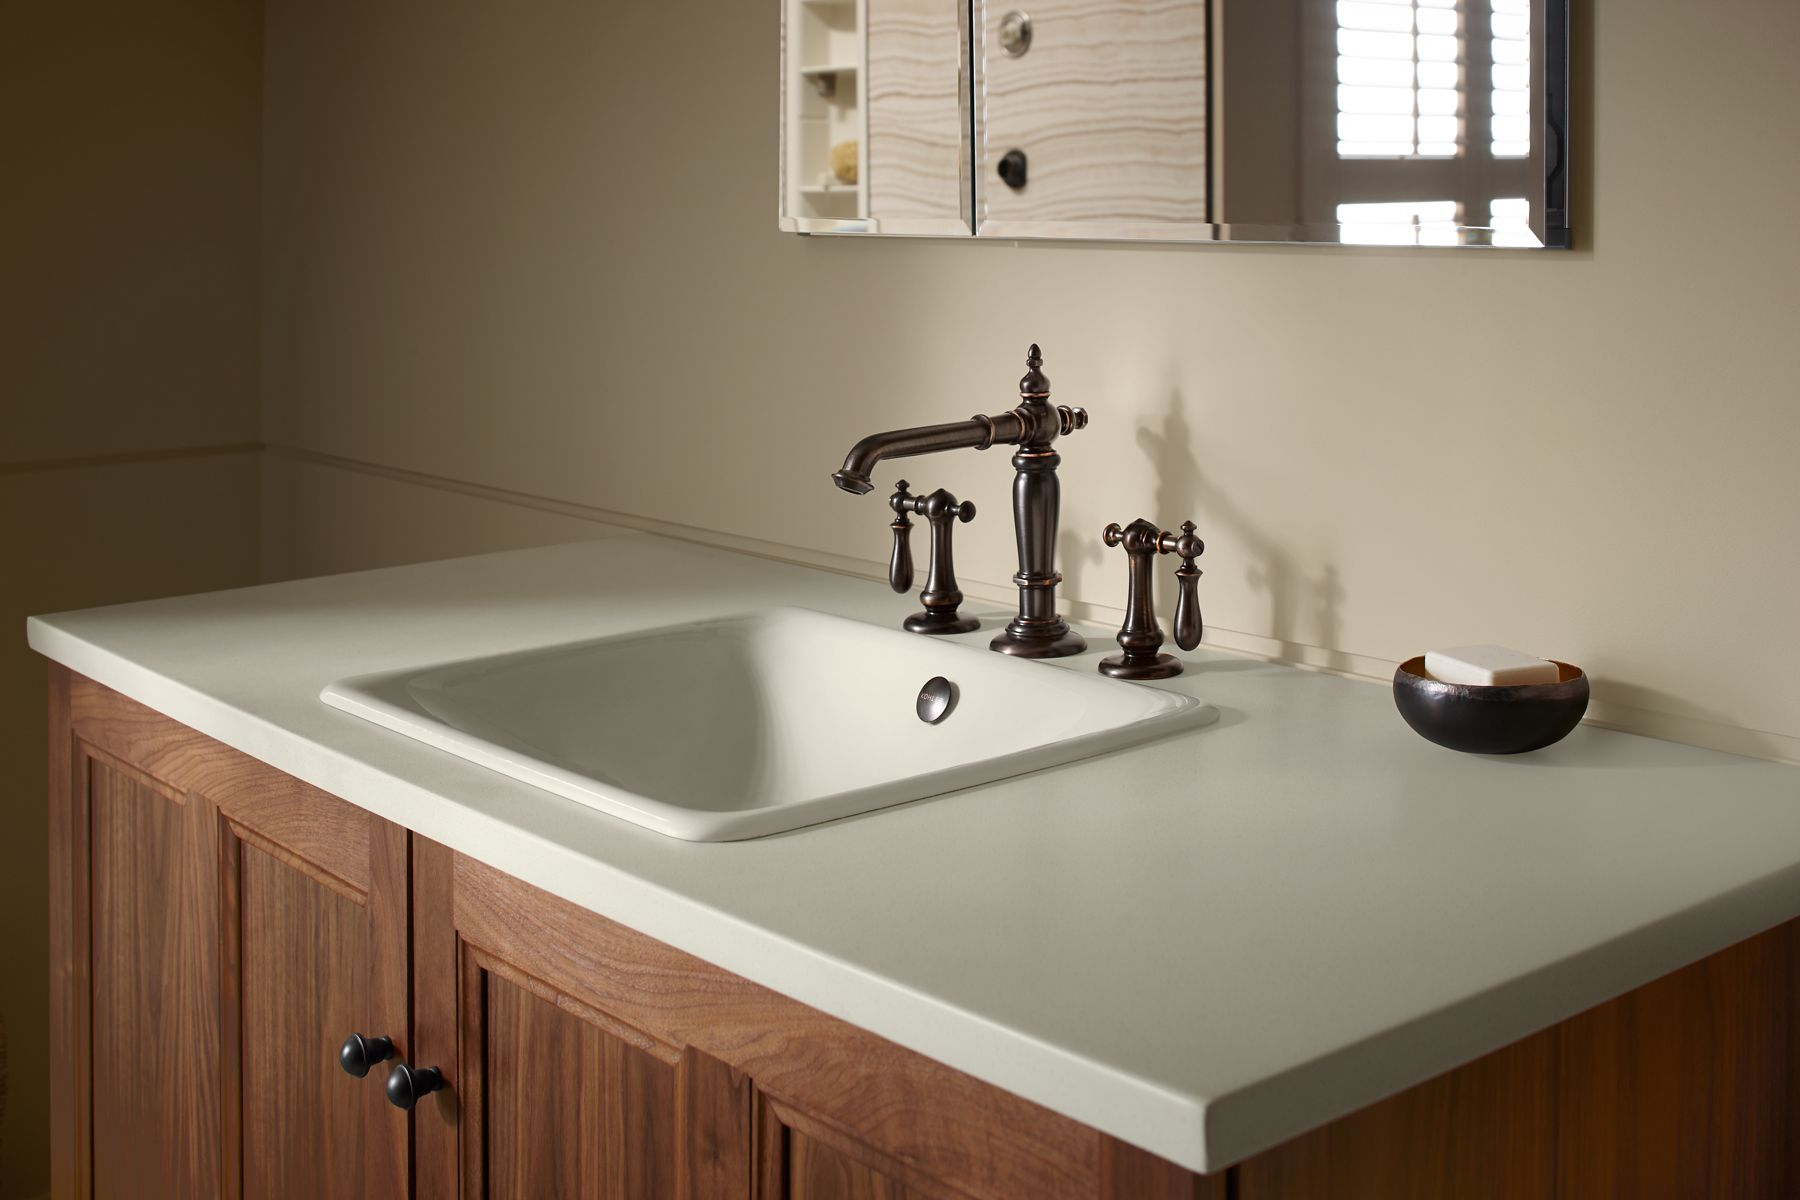 Countertop Surfaces